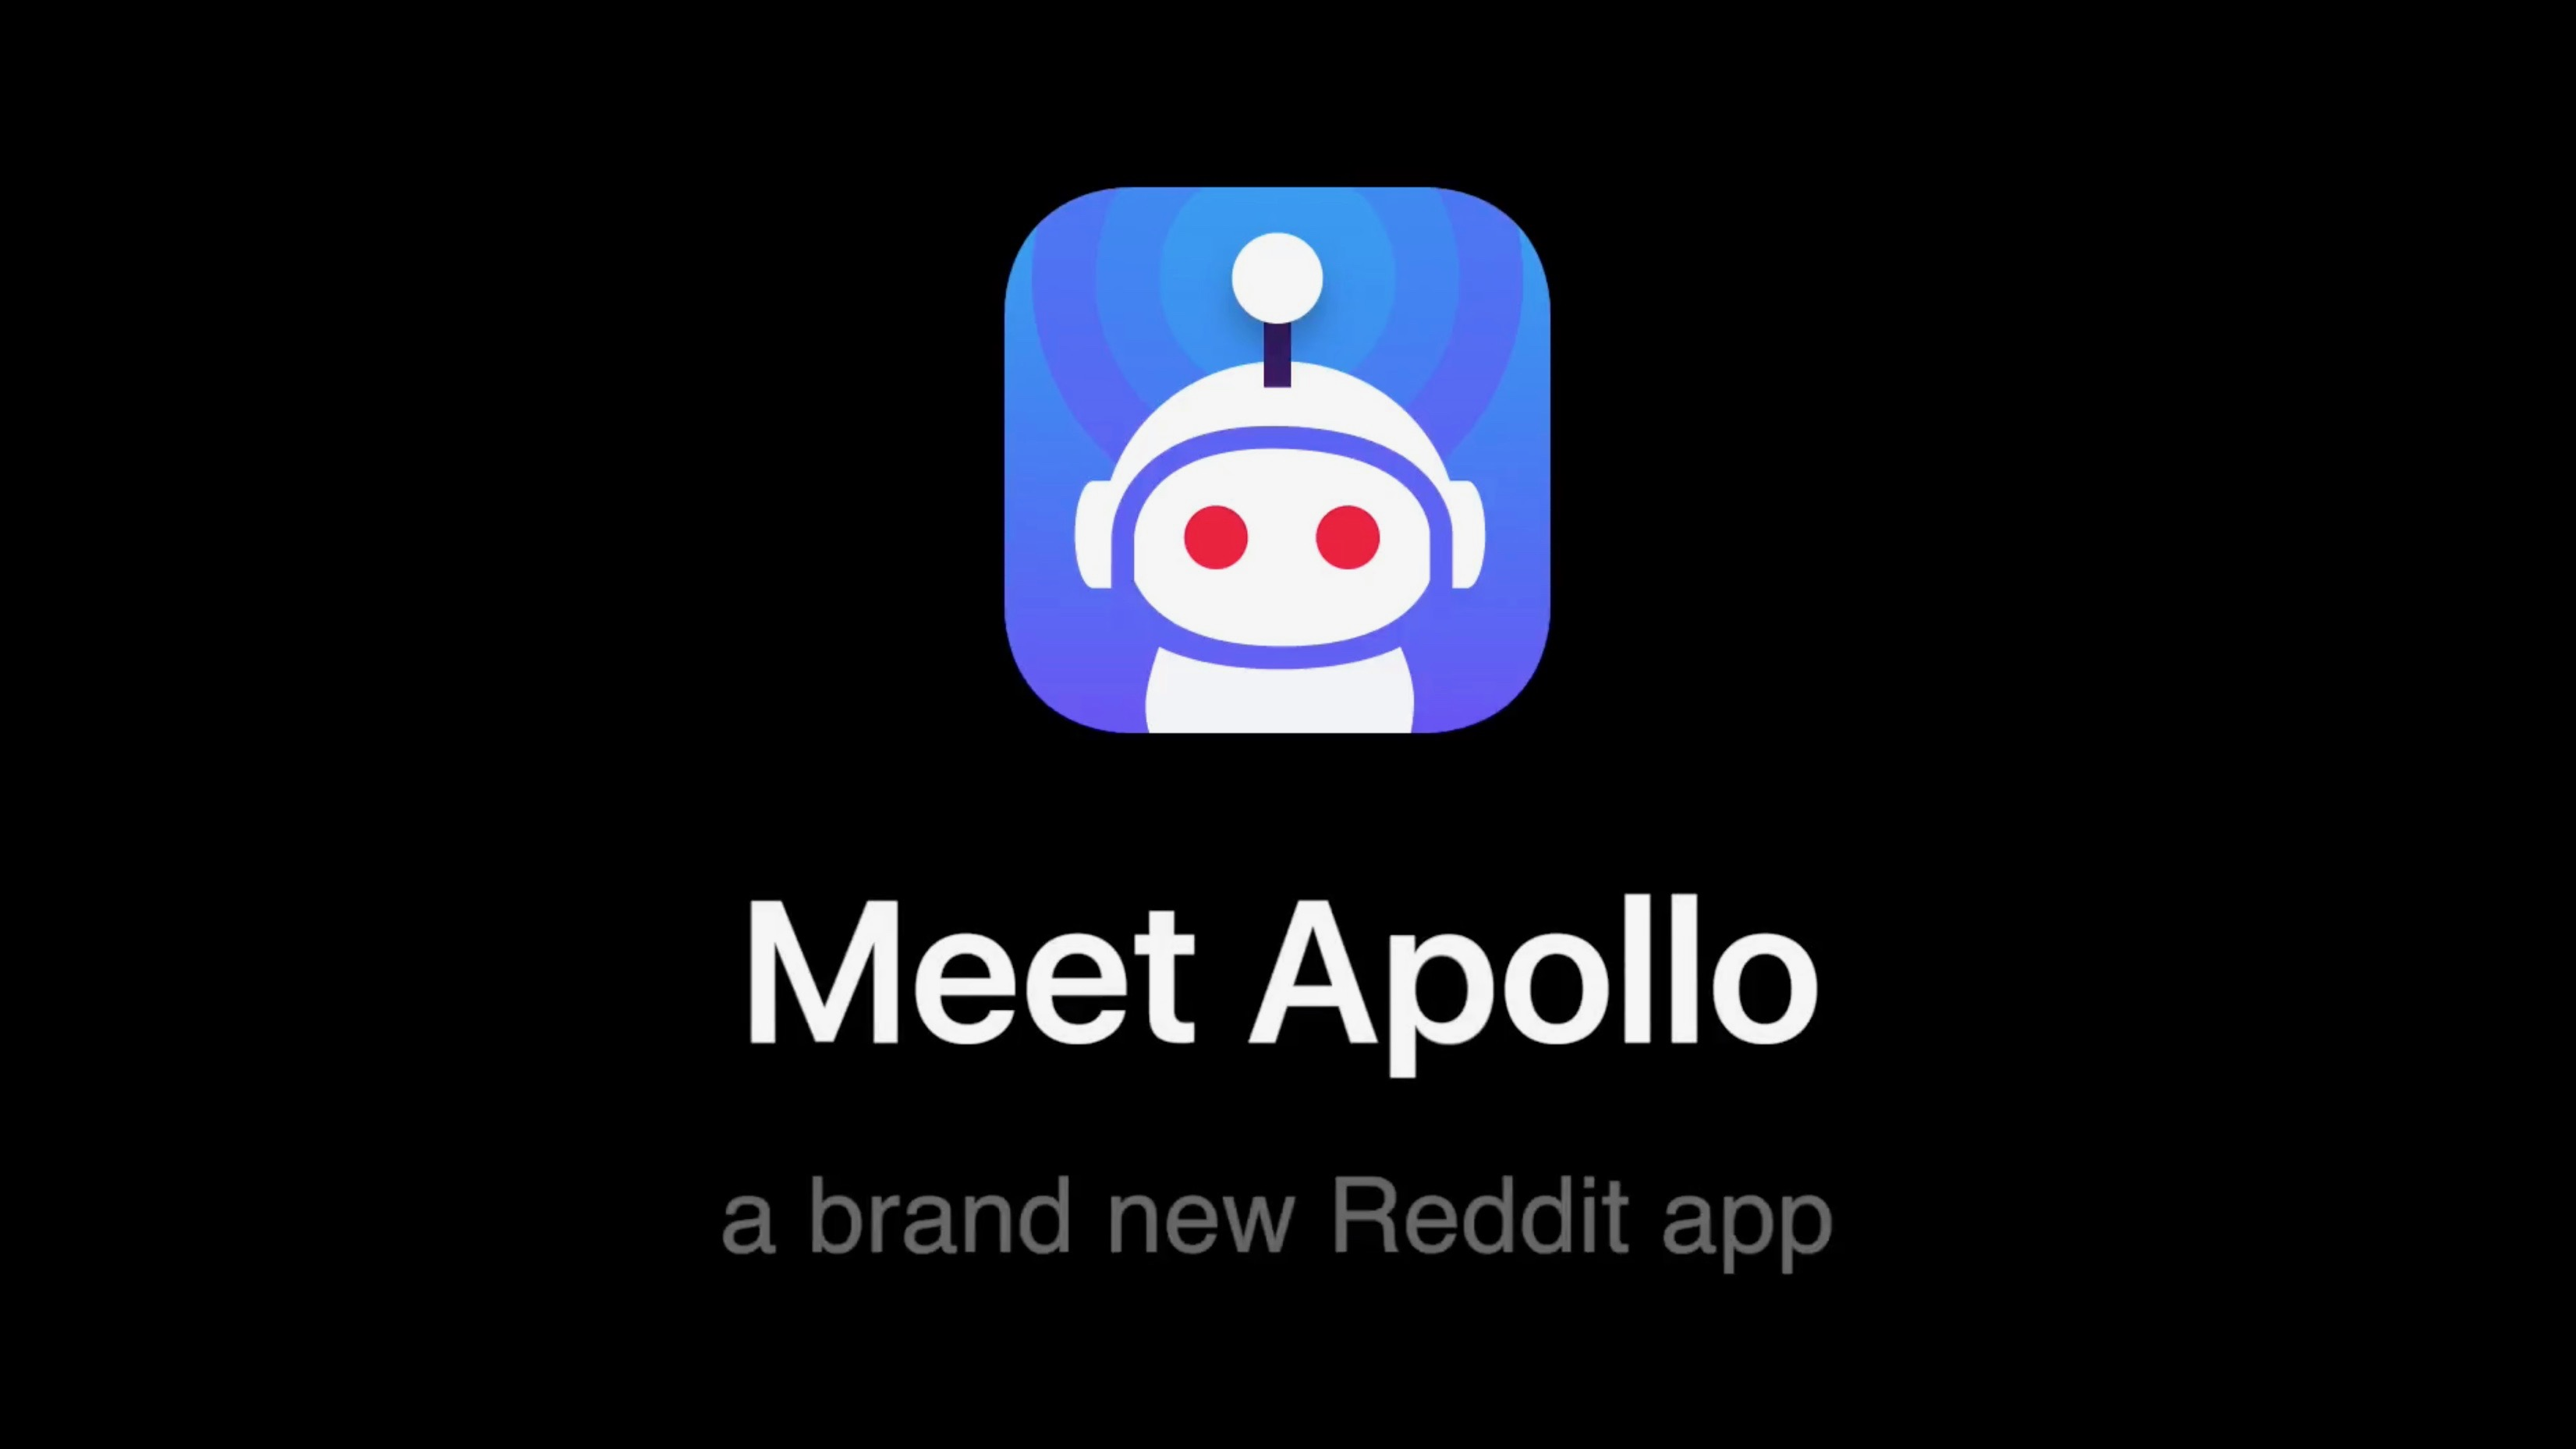 apollo reddit app developer donates proceeds from promotion to spca animal shelter